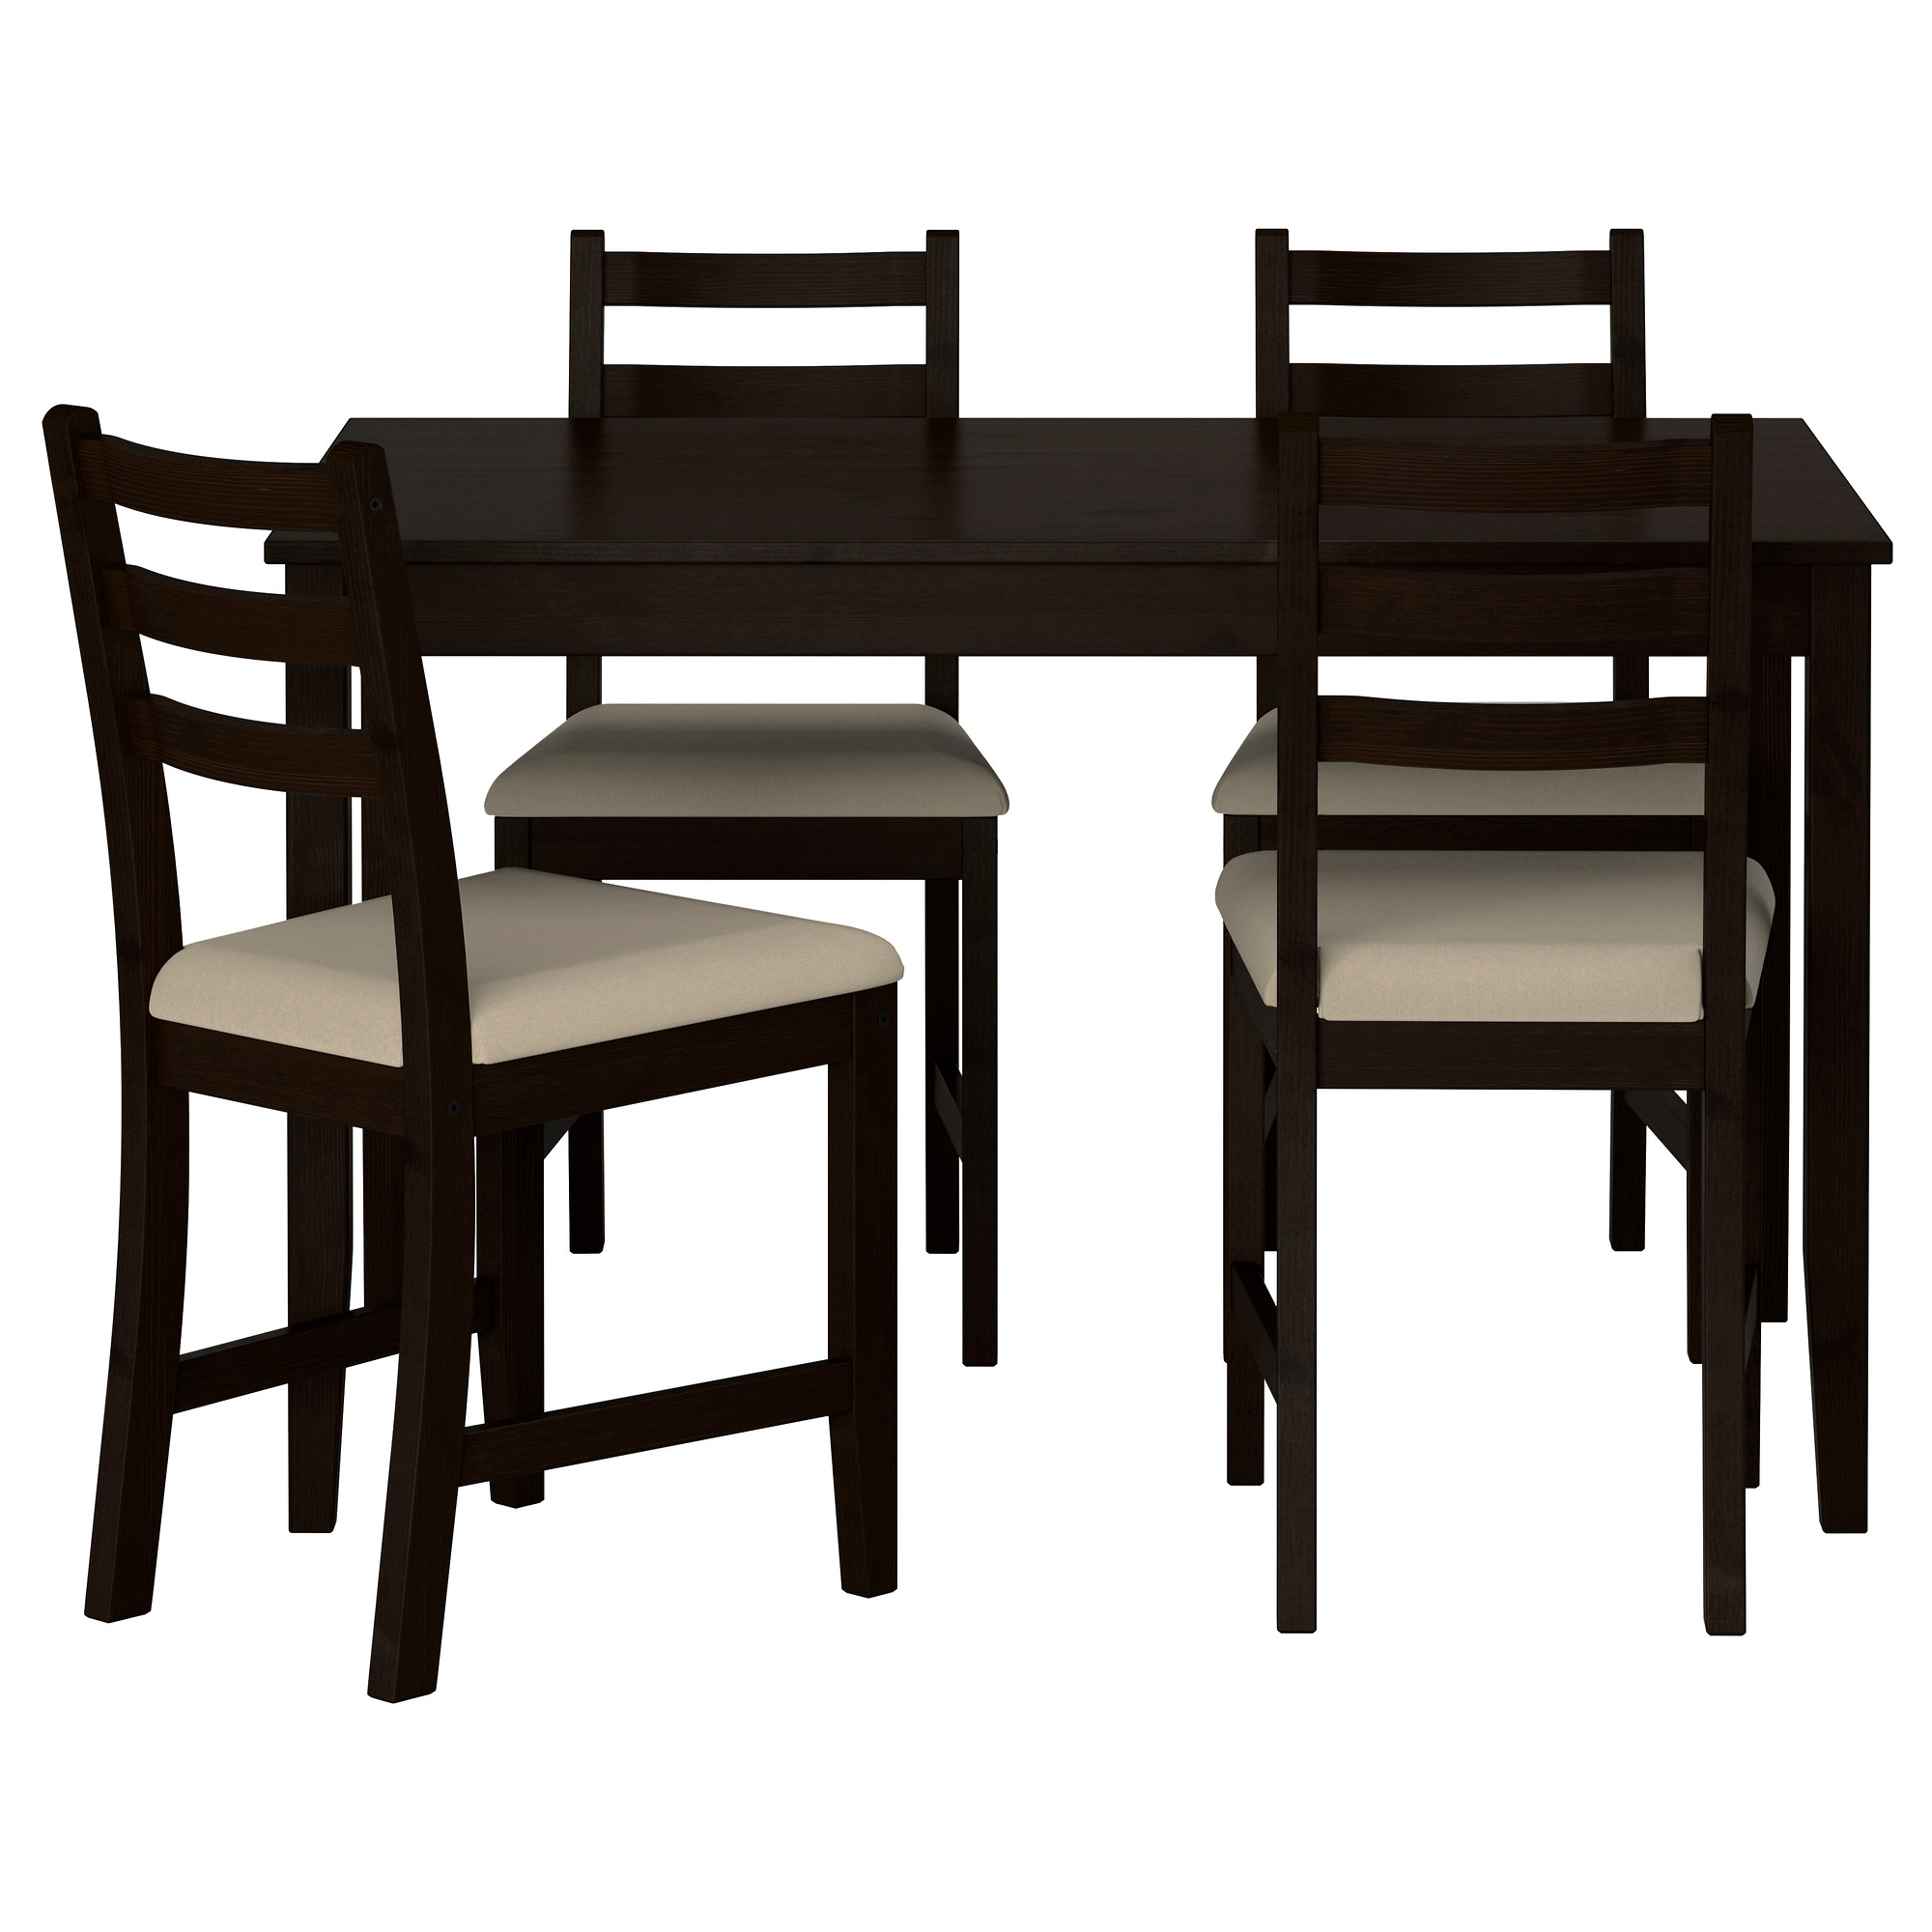 dining table and 4 chairs lerhamn table and 4 chairs - ikea etfhwzh